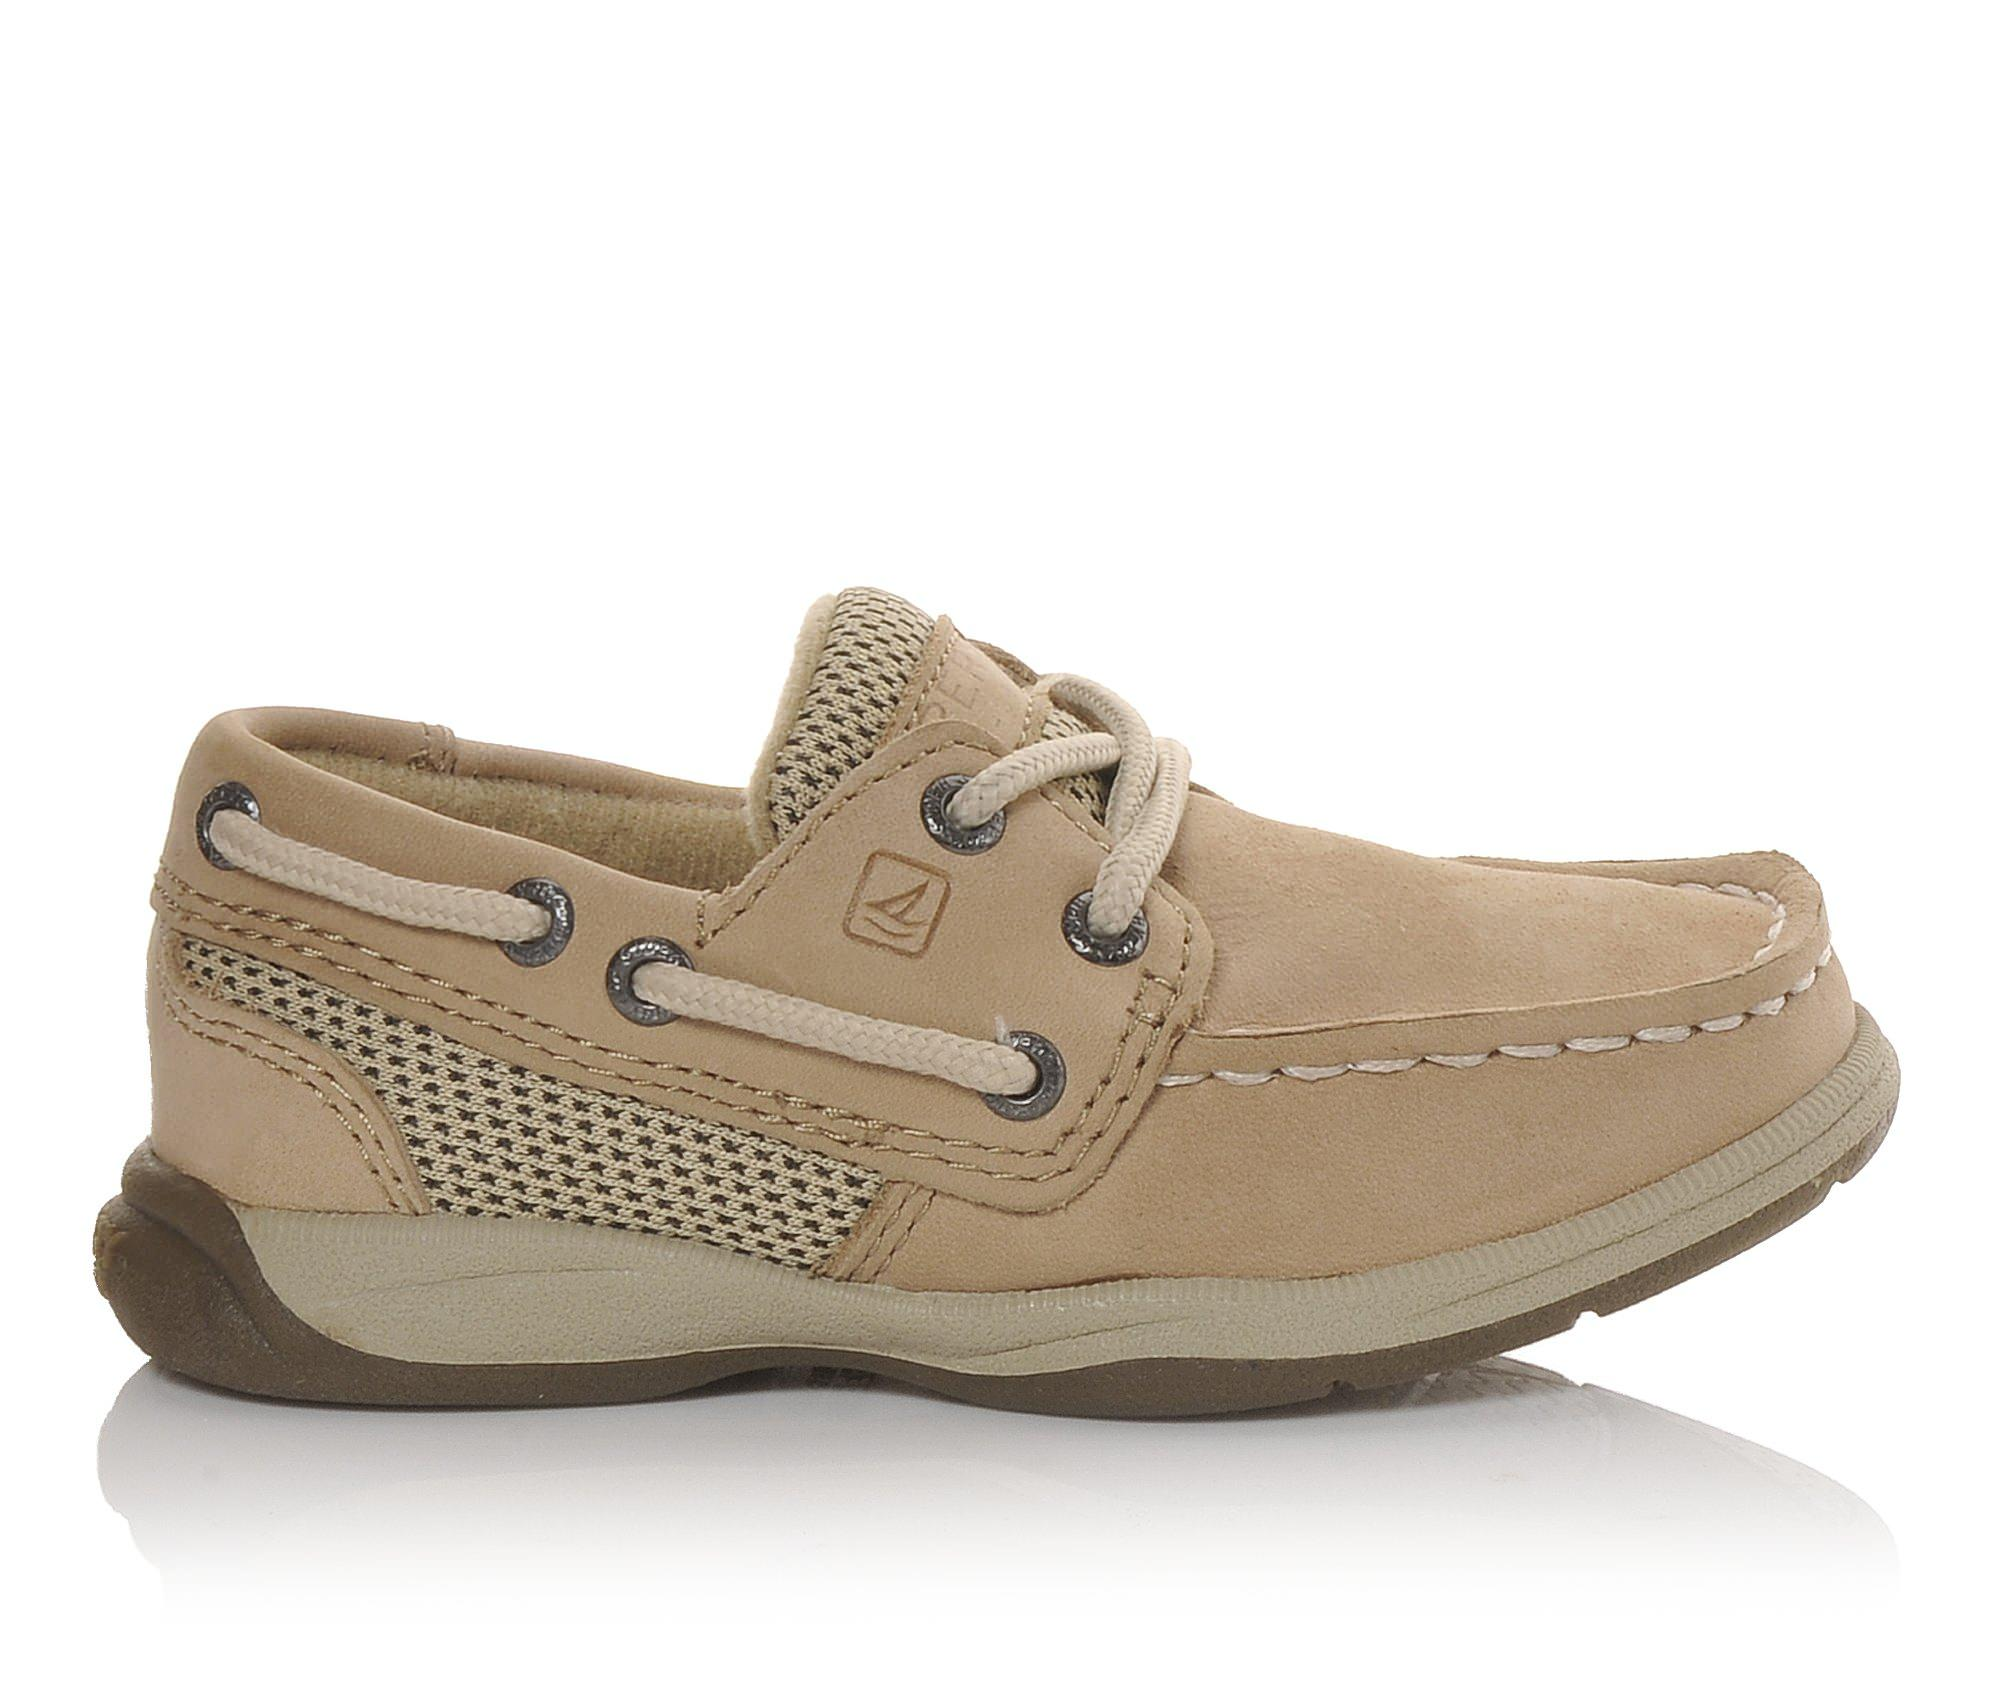 Girls' Sperry Infant Intrepid Boat Shoes (Beige)